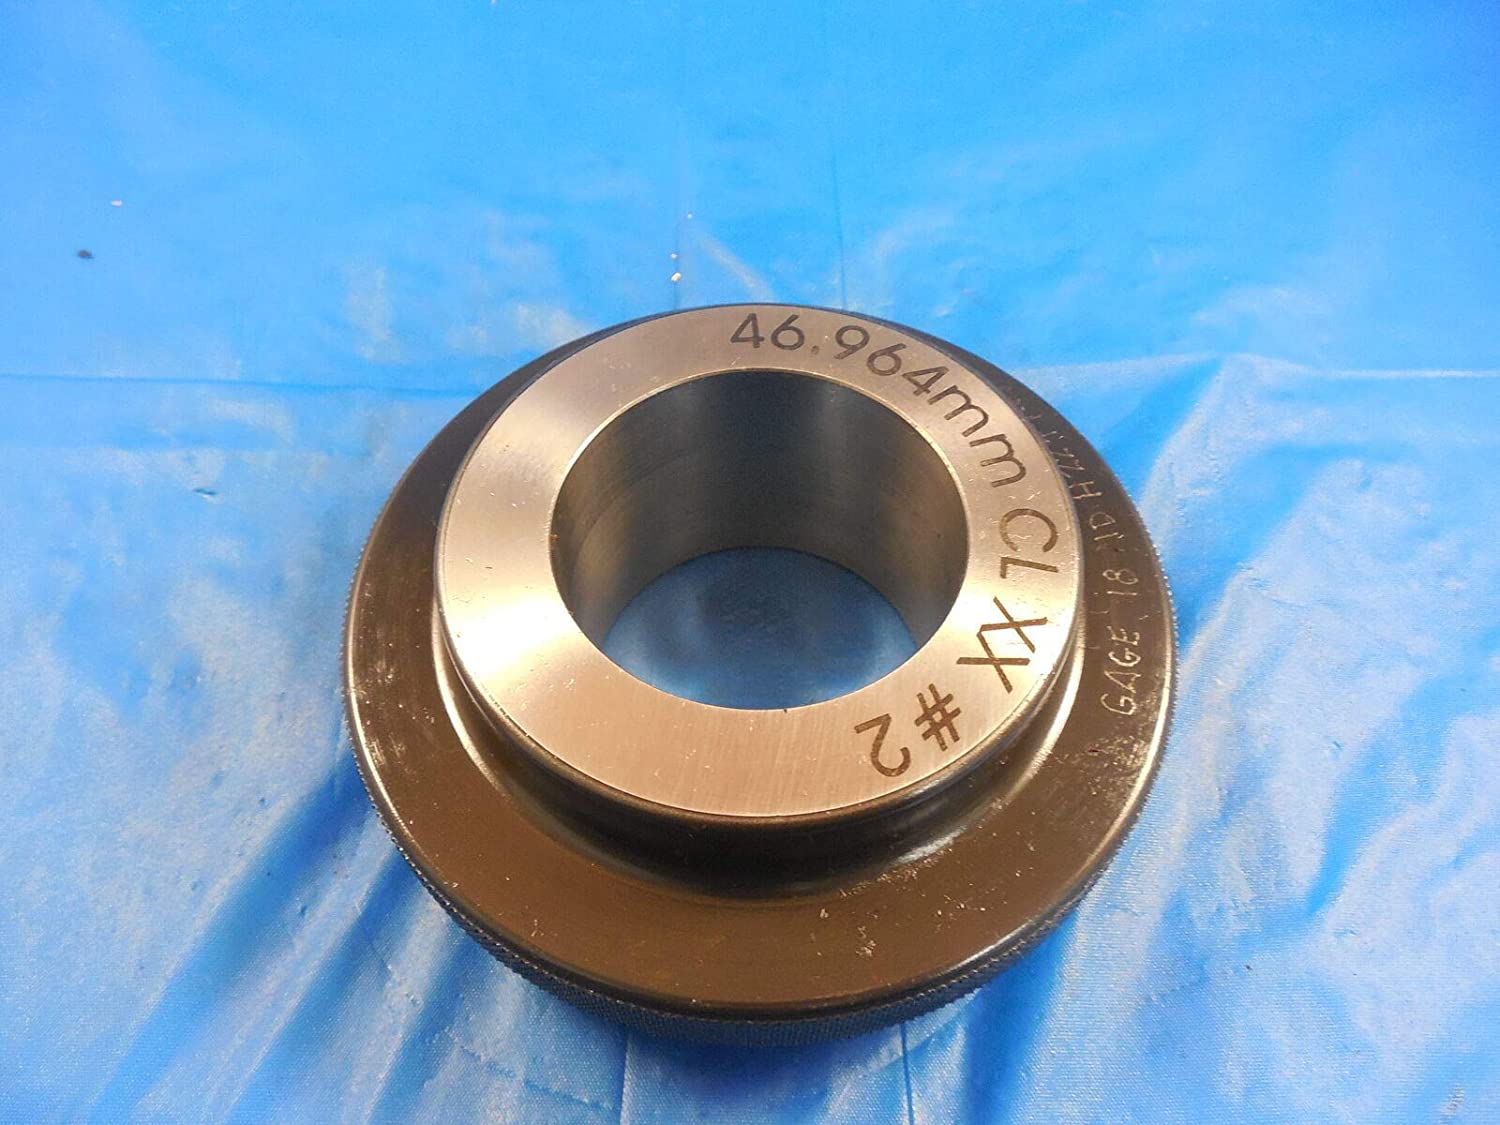 46.964 Class XX Master Plain BORE Ring GAGE 47.000 -.036 Undersize 47 mm 1.8490